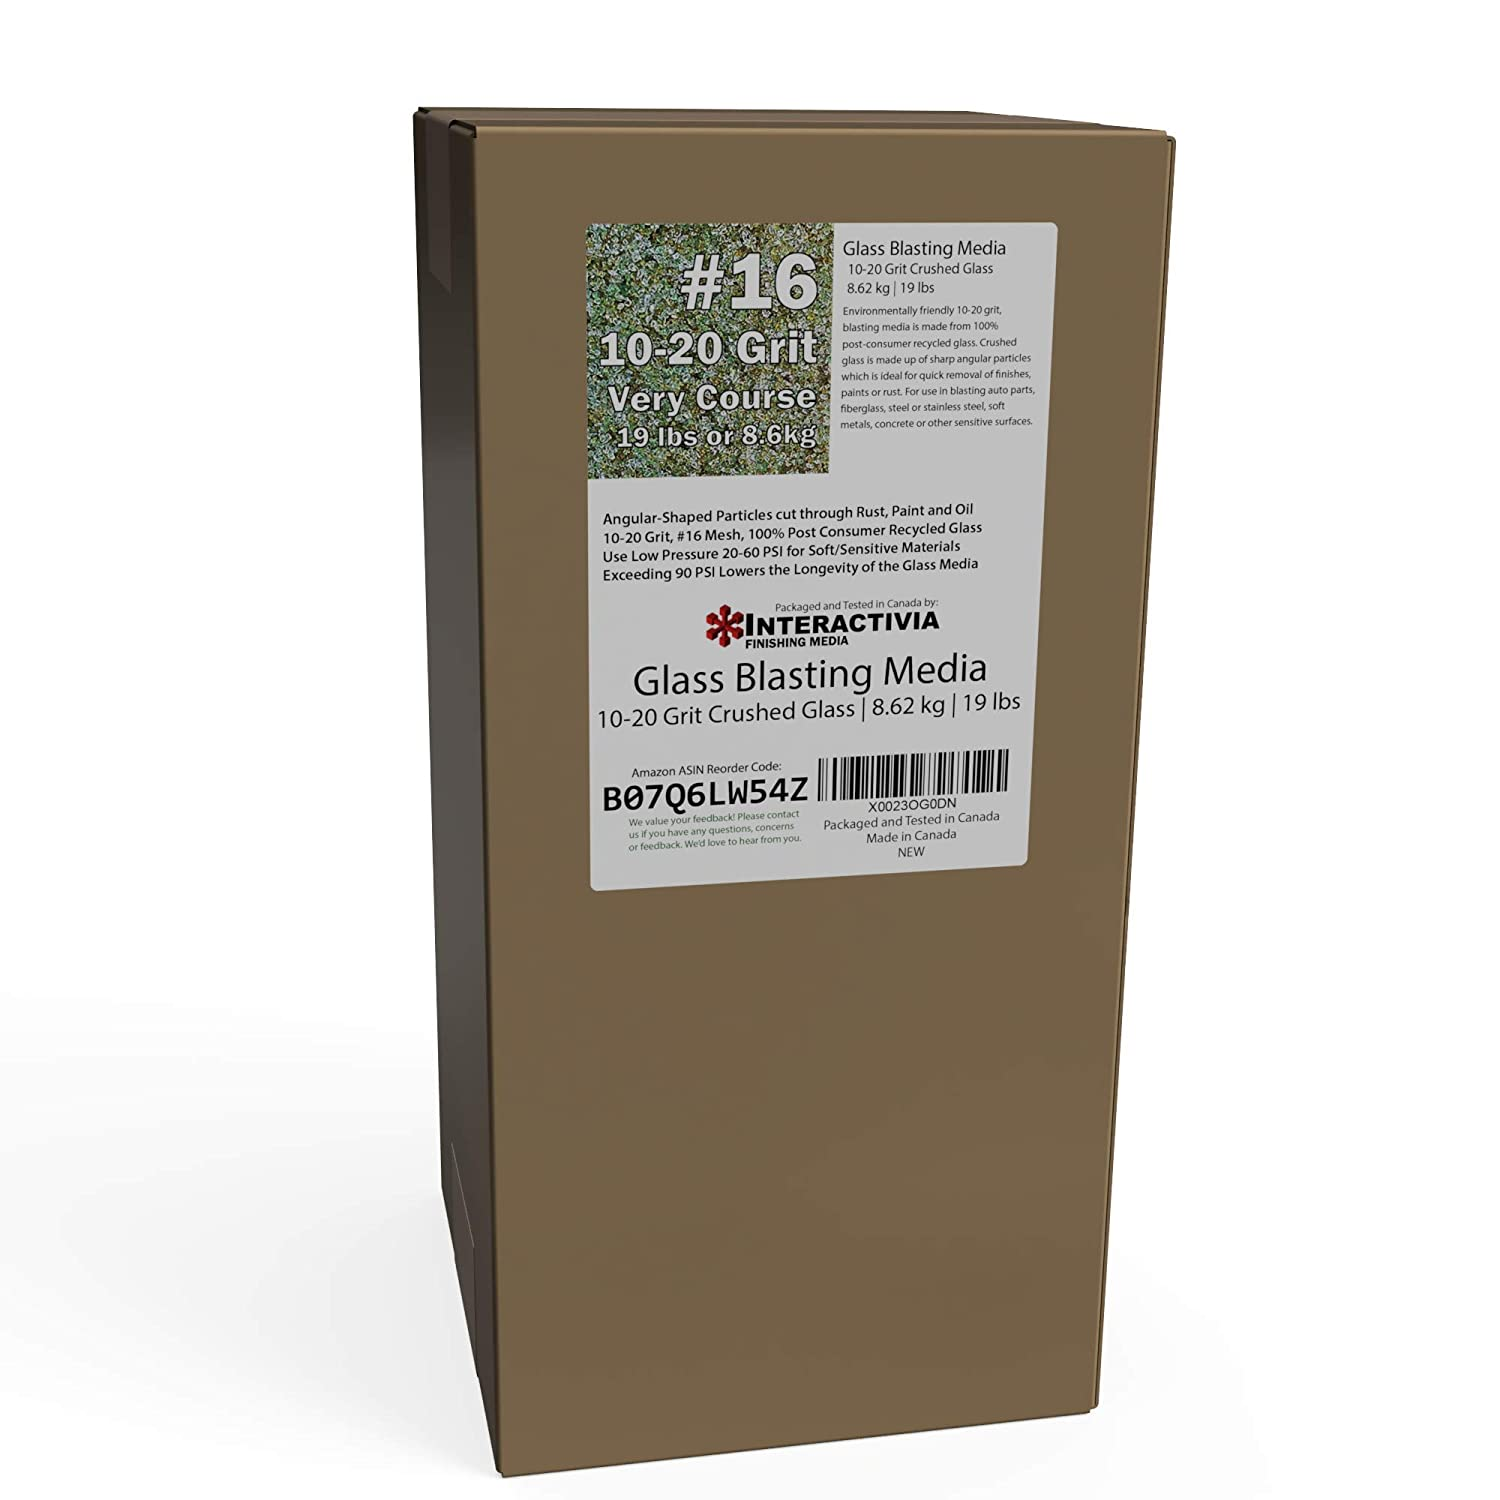 10-20 Grit (#16) Crushed Glass Abrasive - 19 lb or 8.6 kg - Blasting Abrasive Media (Extra Course) #16 Mesh - 1854 to 940 Microns - for Blast Cabinets Or Sand Blasting Guns